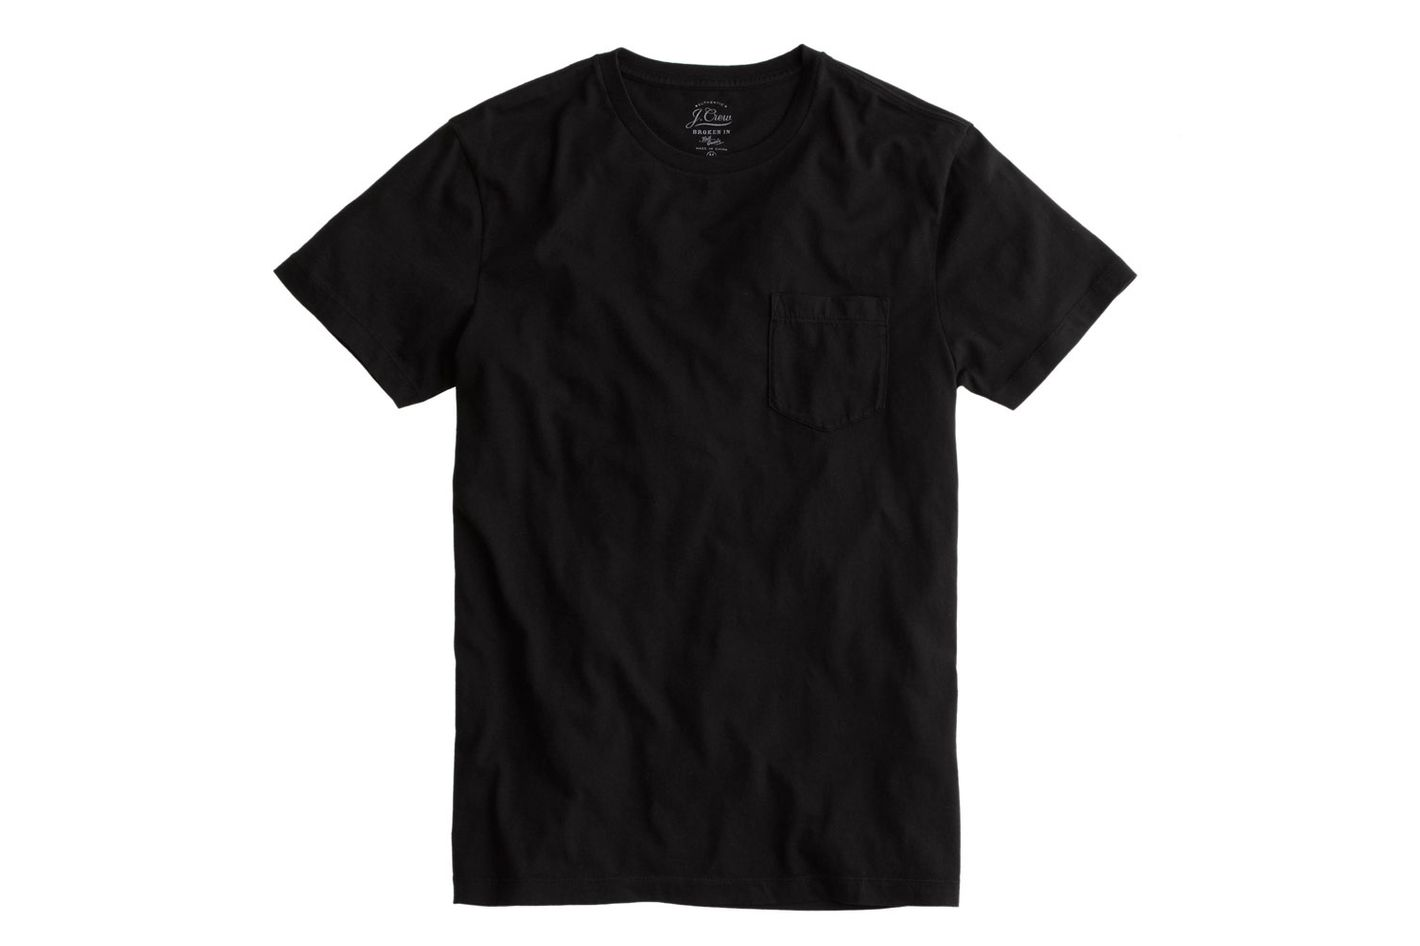 the best black t shirt for men according to nick wooster